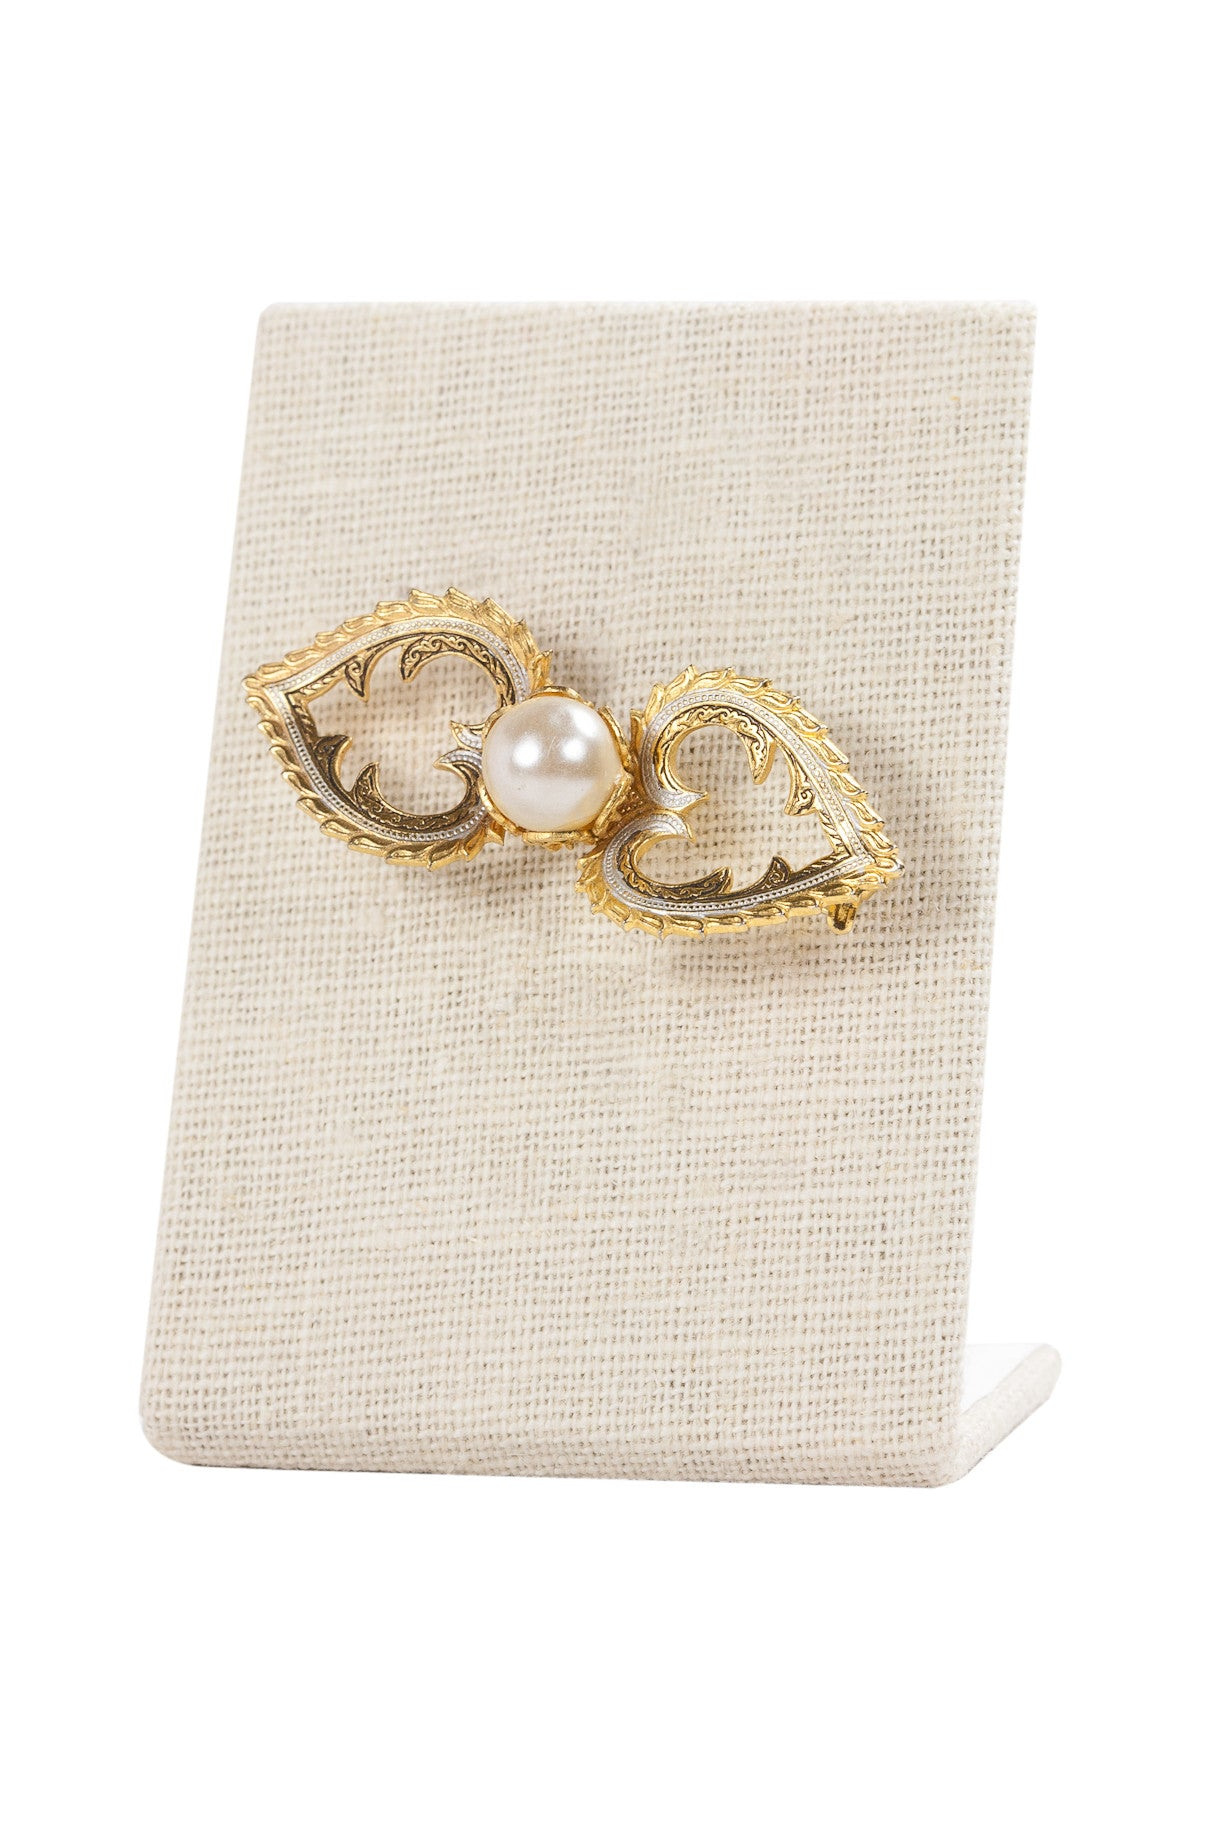 50's__Spain__Pearl Bar Brooch